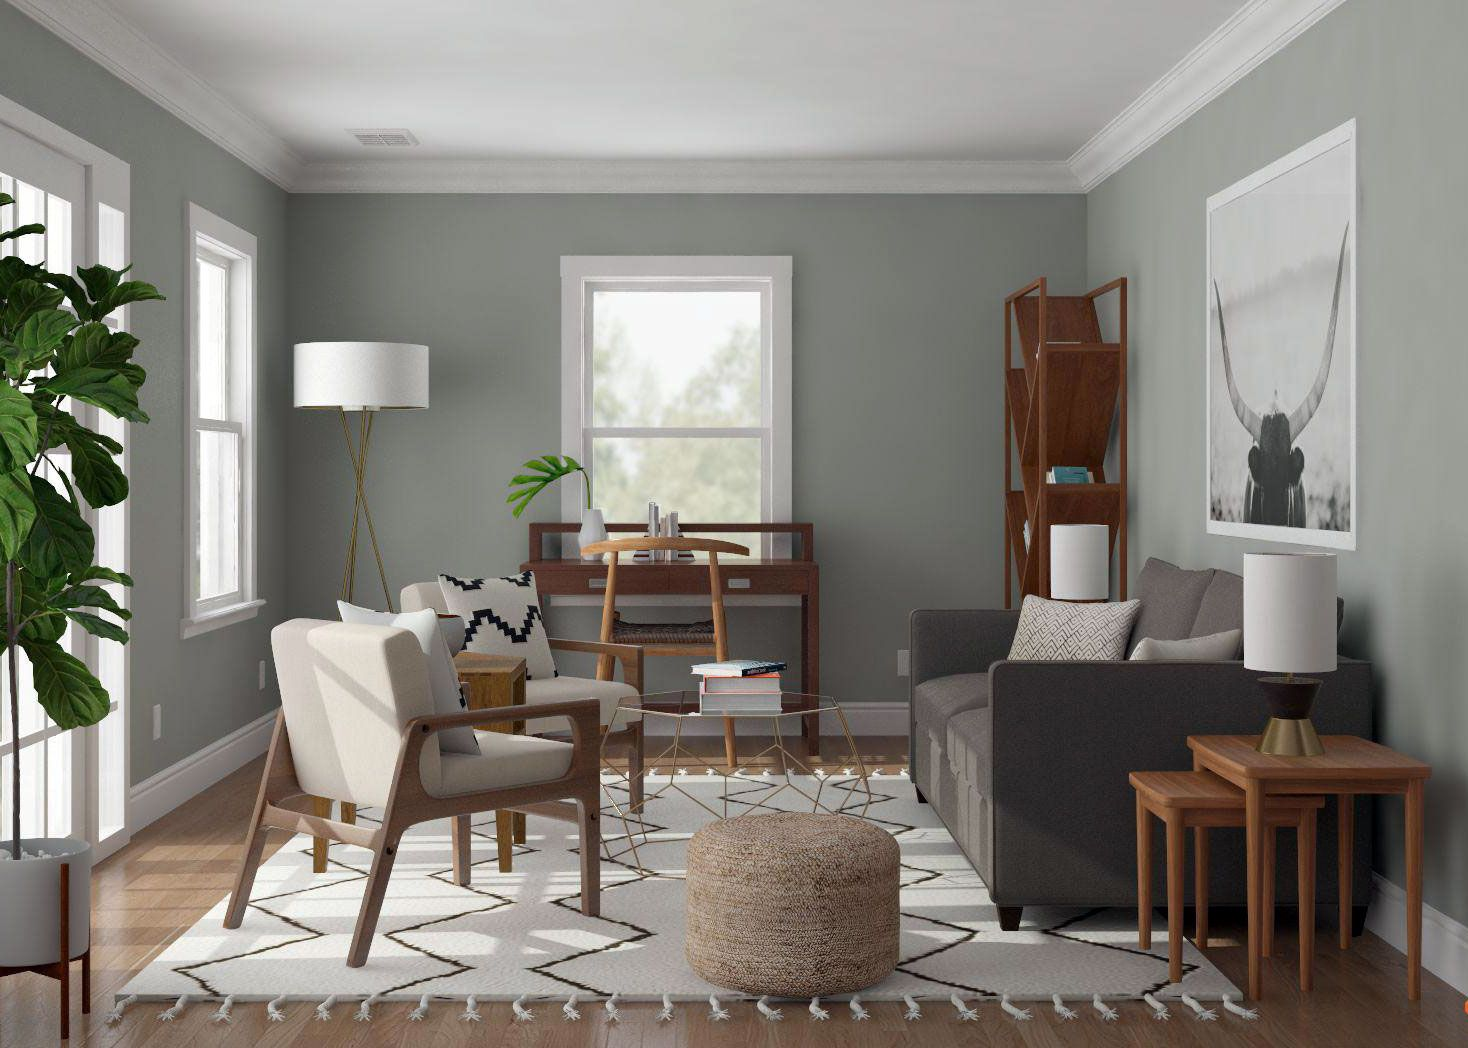 11+ Mid century modern living room colors ideas in 2021